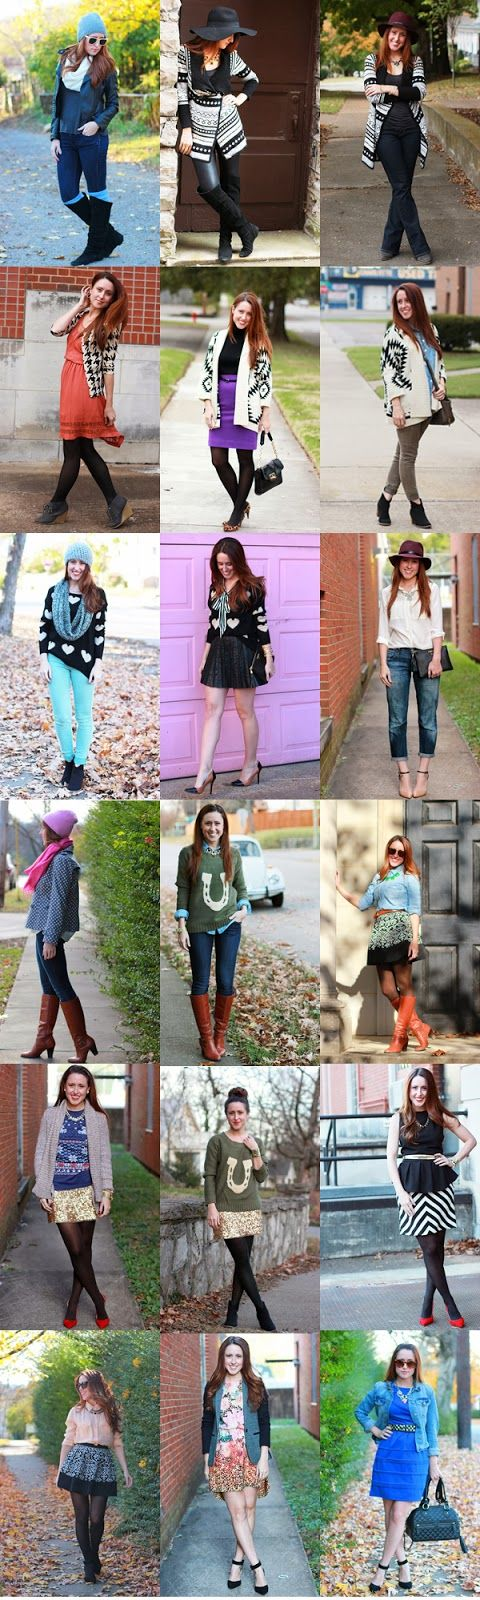 Here & Now: A November of Outfits